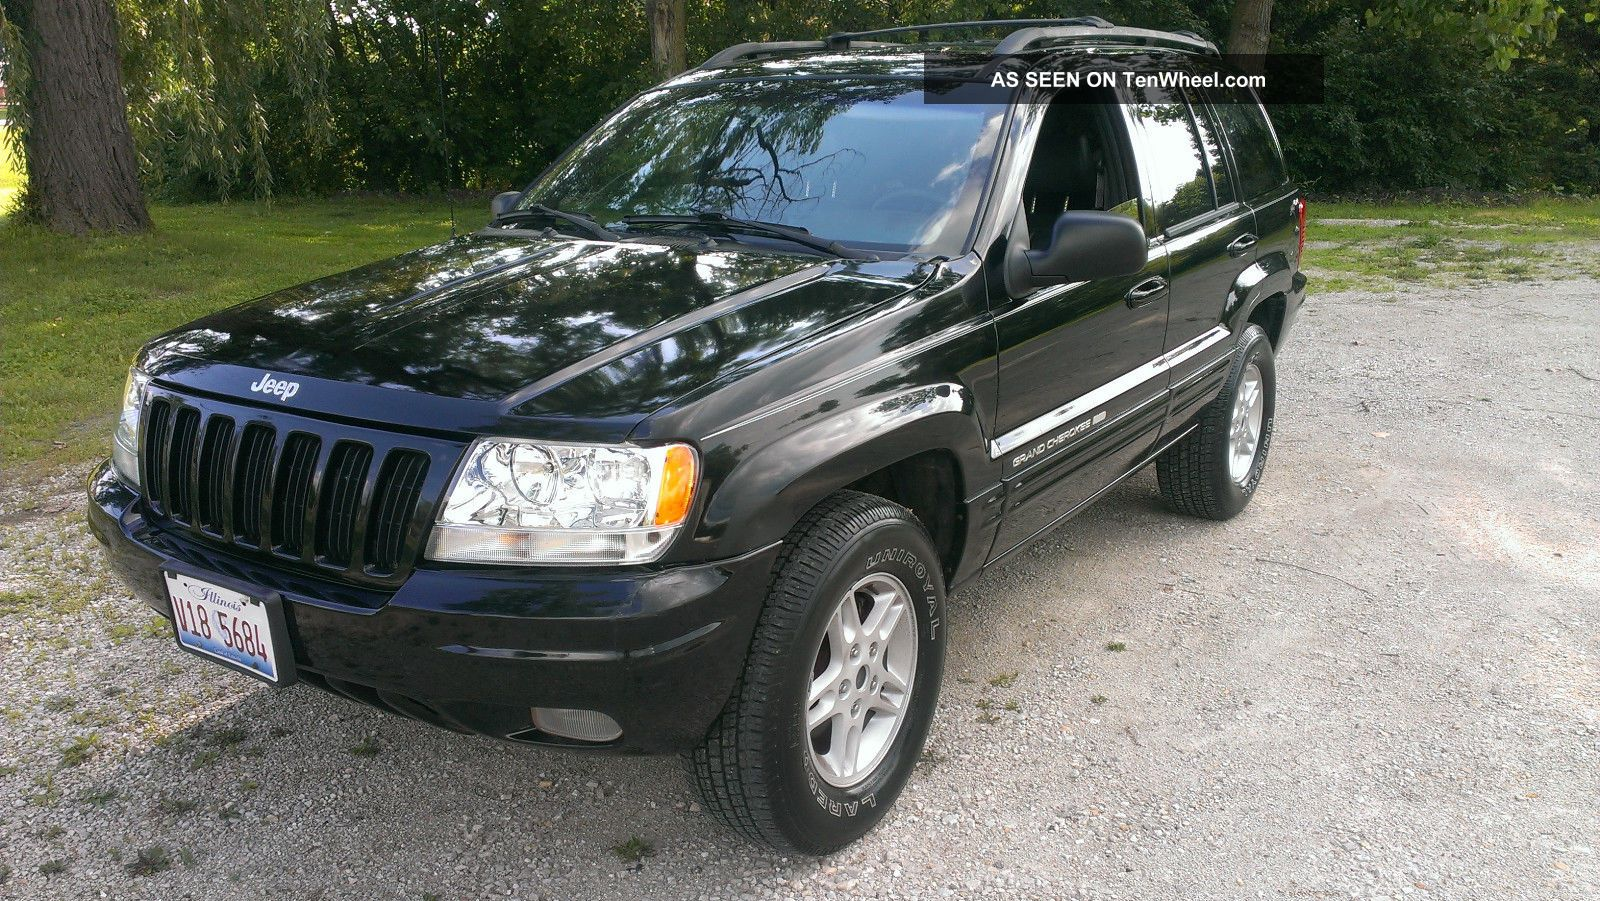 2000 Jeep Grand Cherokee Limited V8 Loaded Black On Black Fresh Engine Grand Cherokee photo